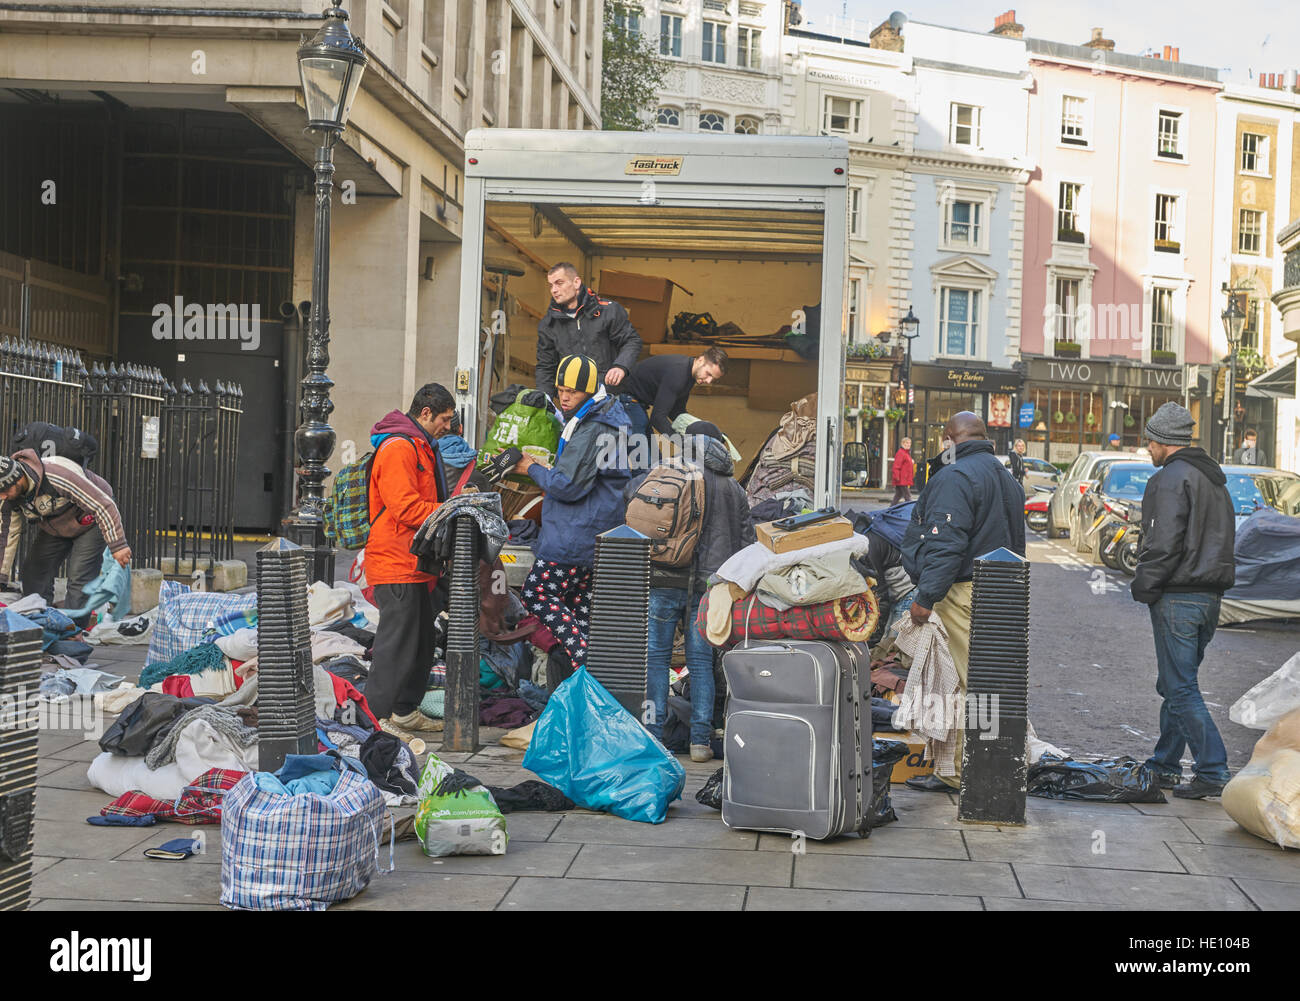 clothing charity, clothes distribution to homeless people. - Stock Image